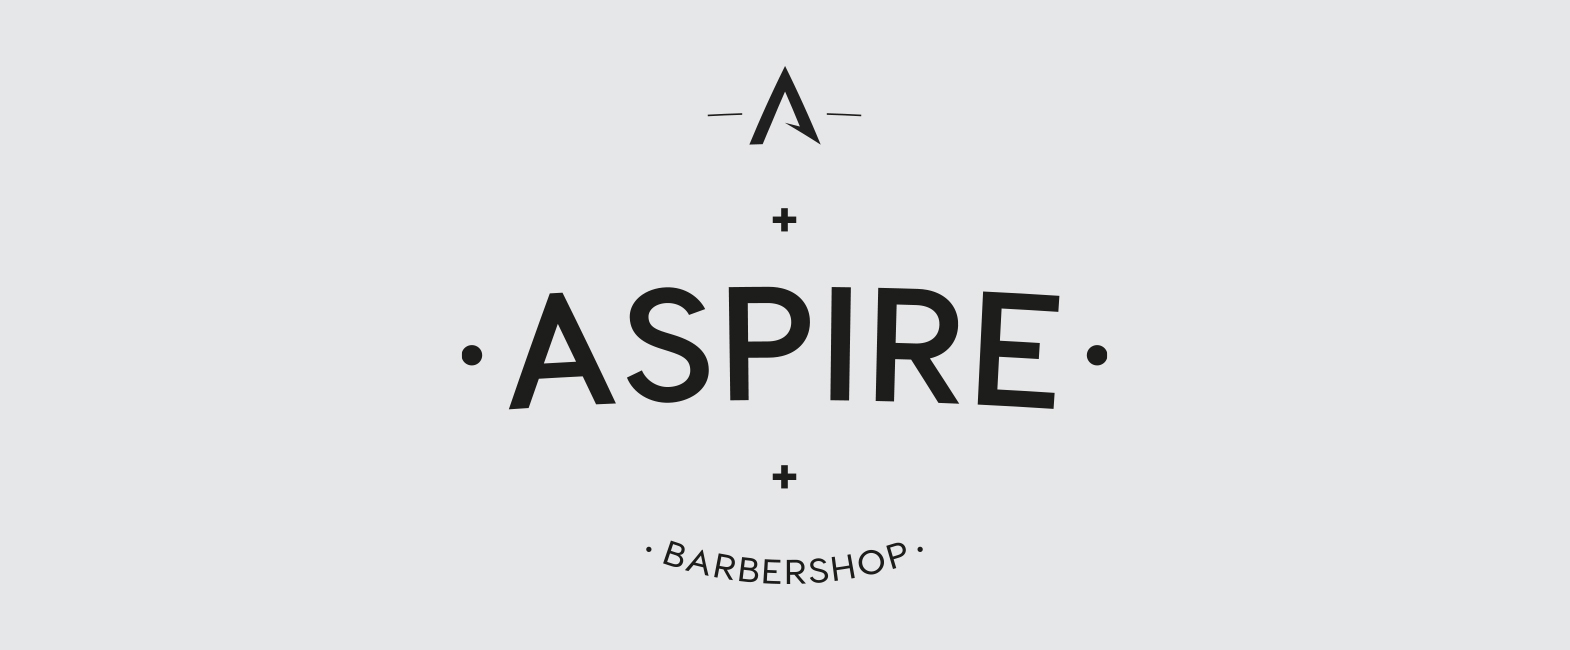 aspire logo construction